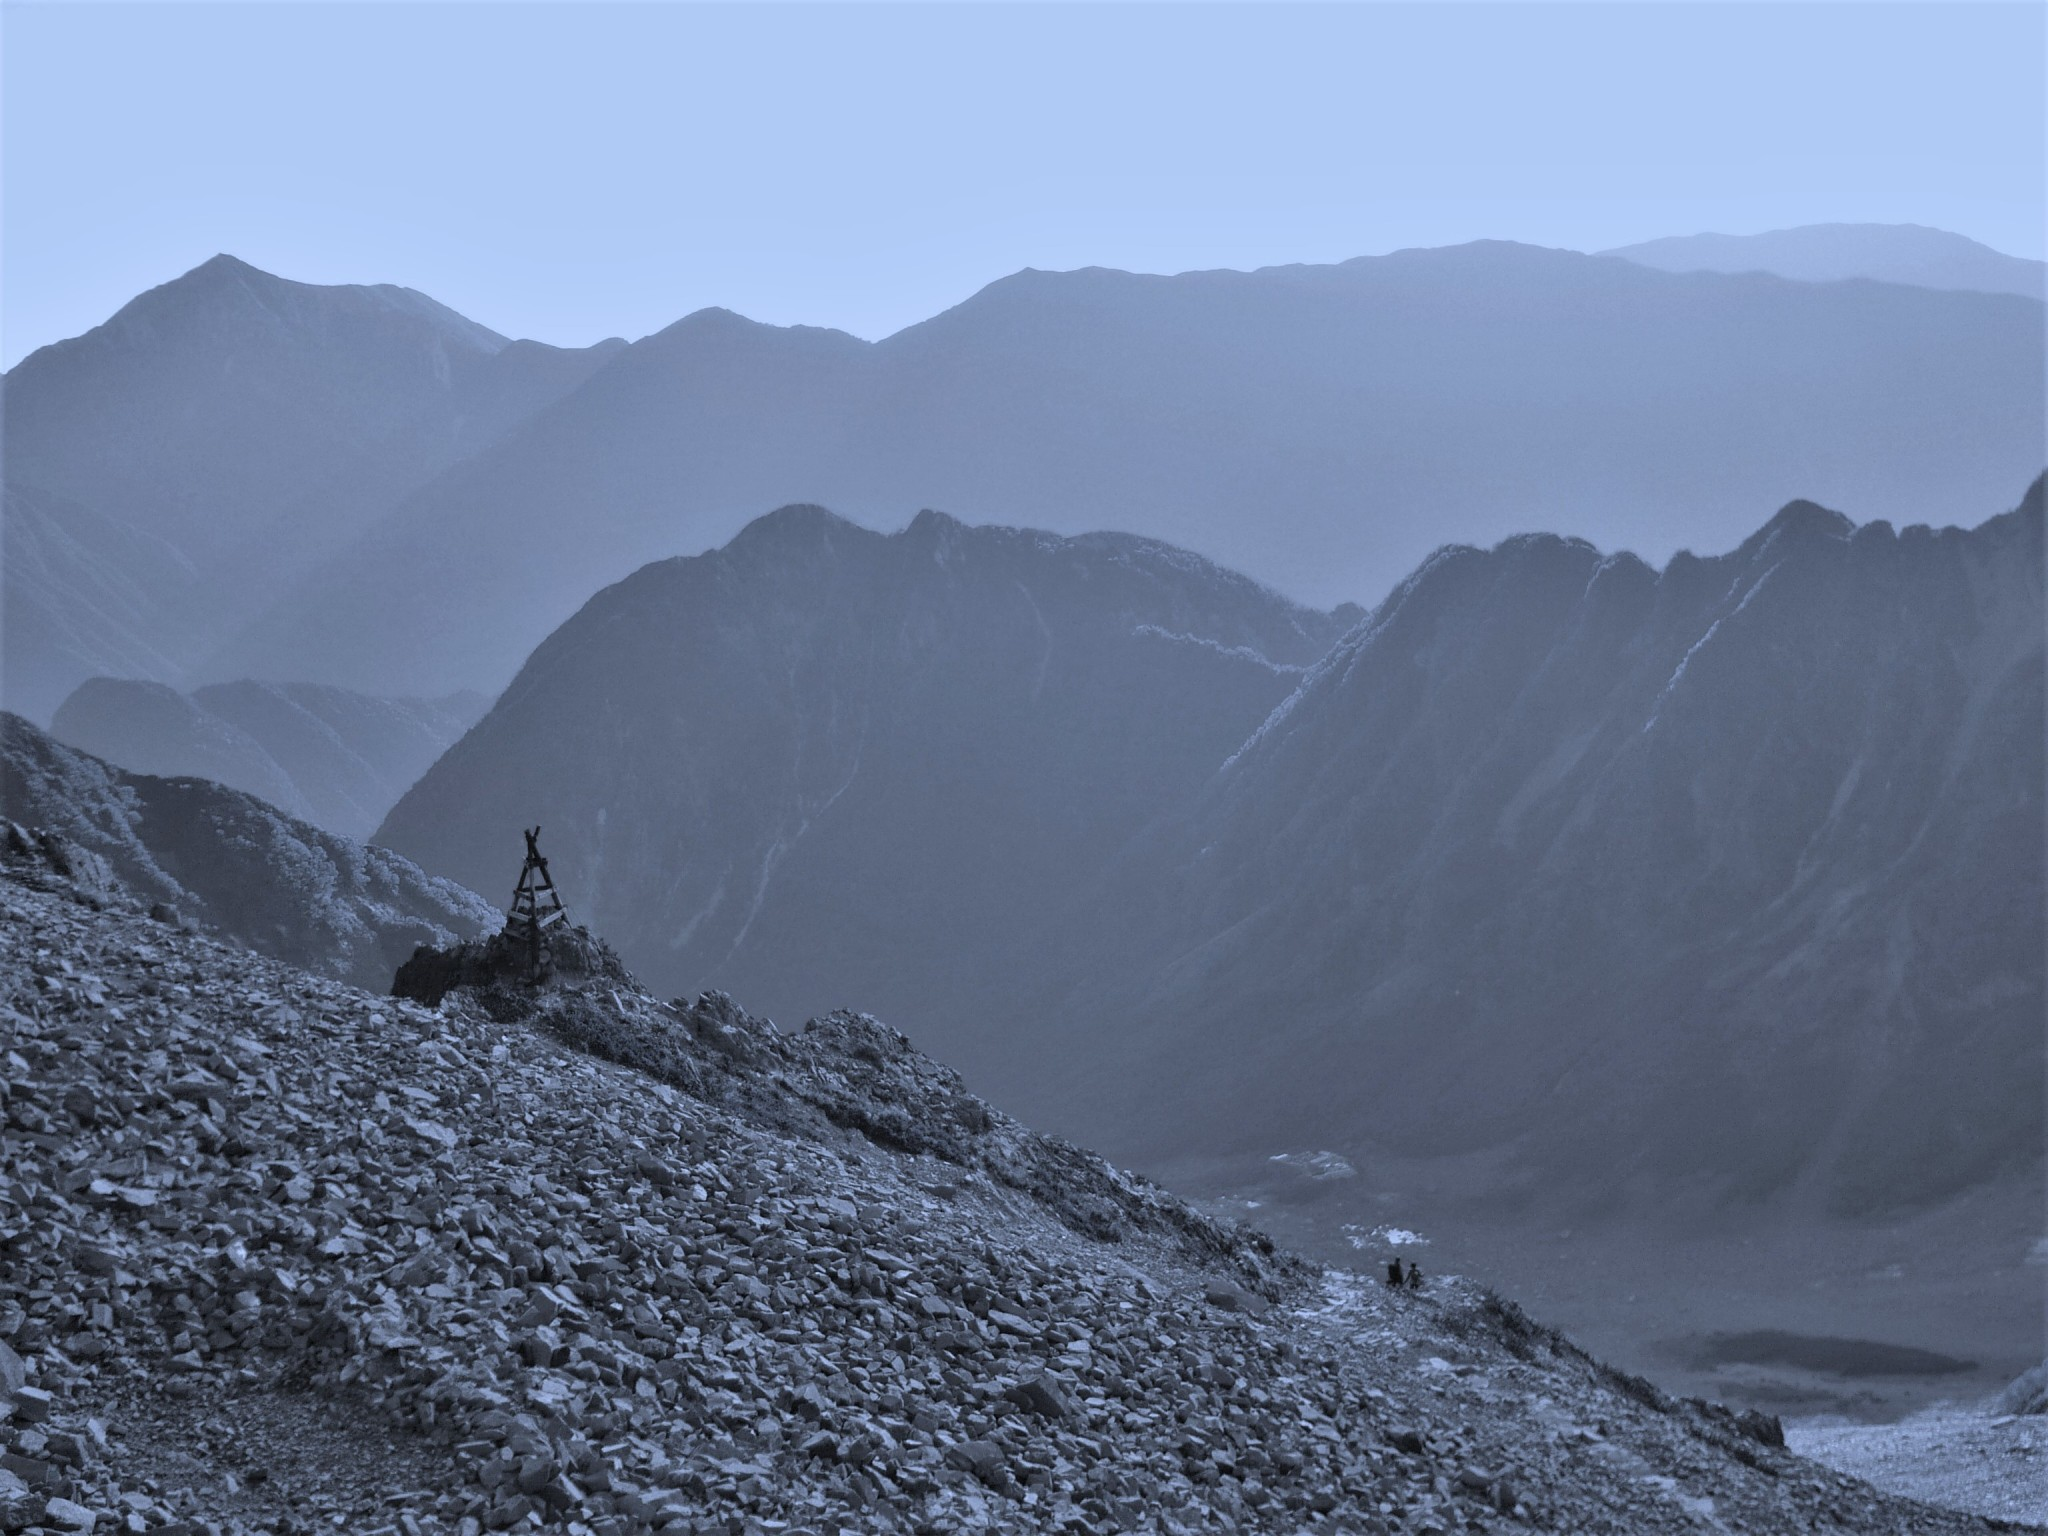 A panoramic blue-hued view of a jagged mountain ridgeline and descending slopes in the Japan Alps.